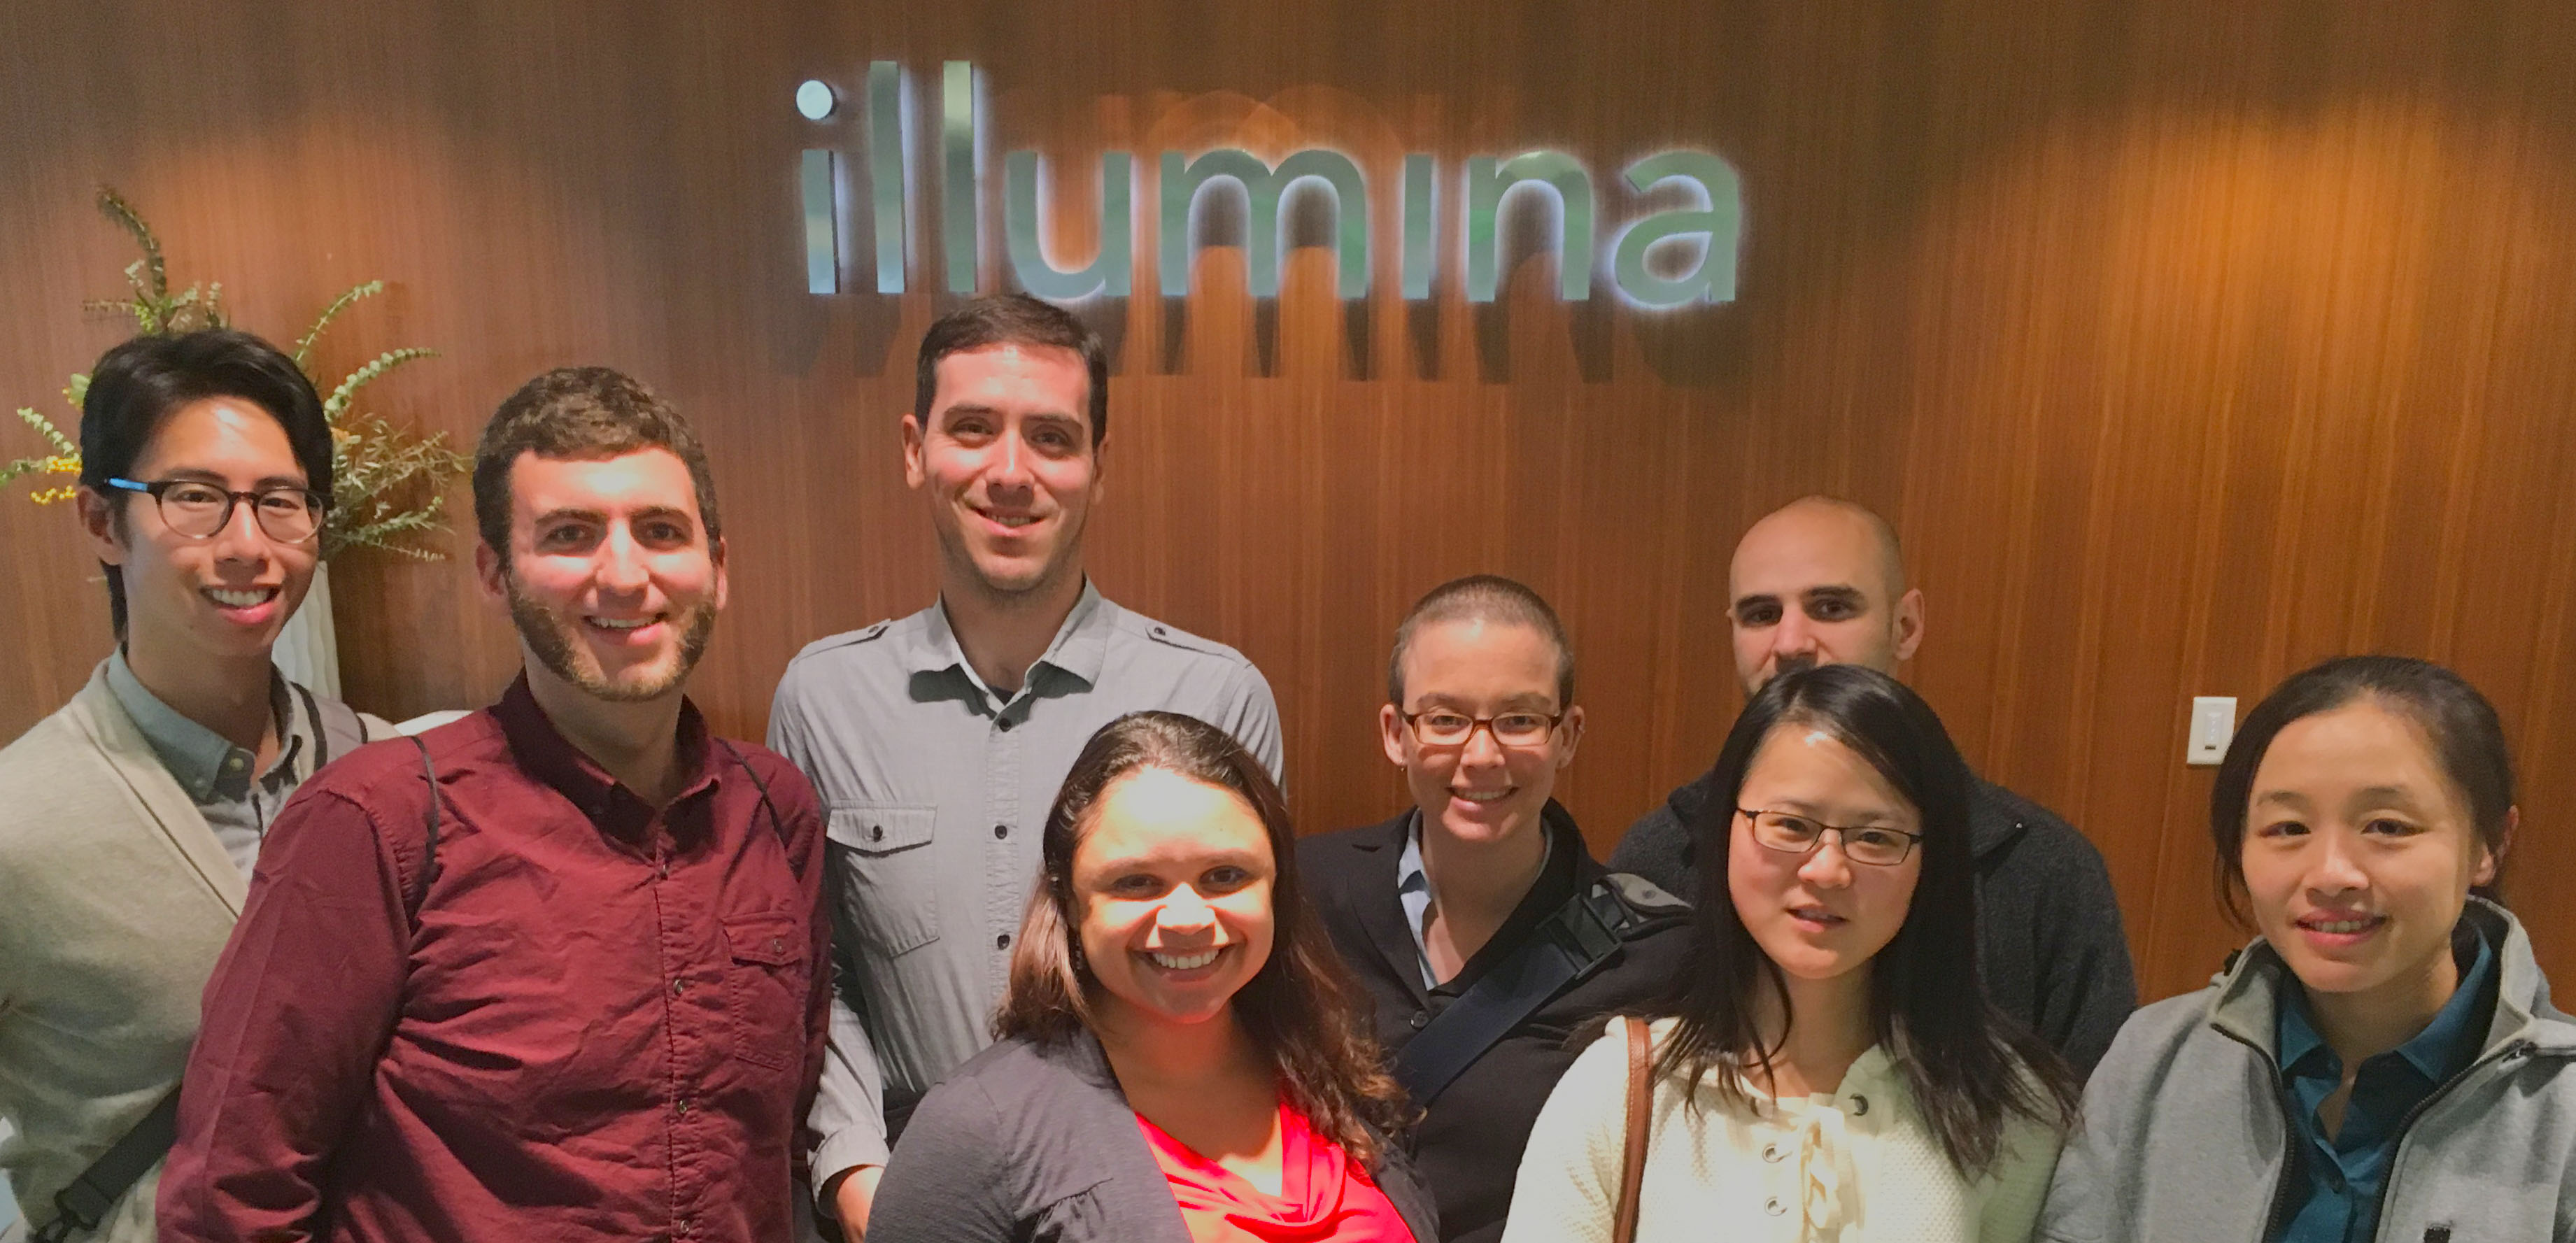 MIND at Illumina